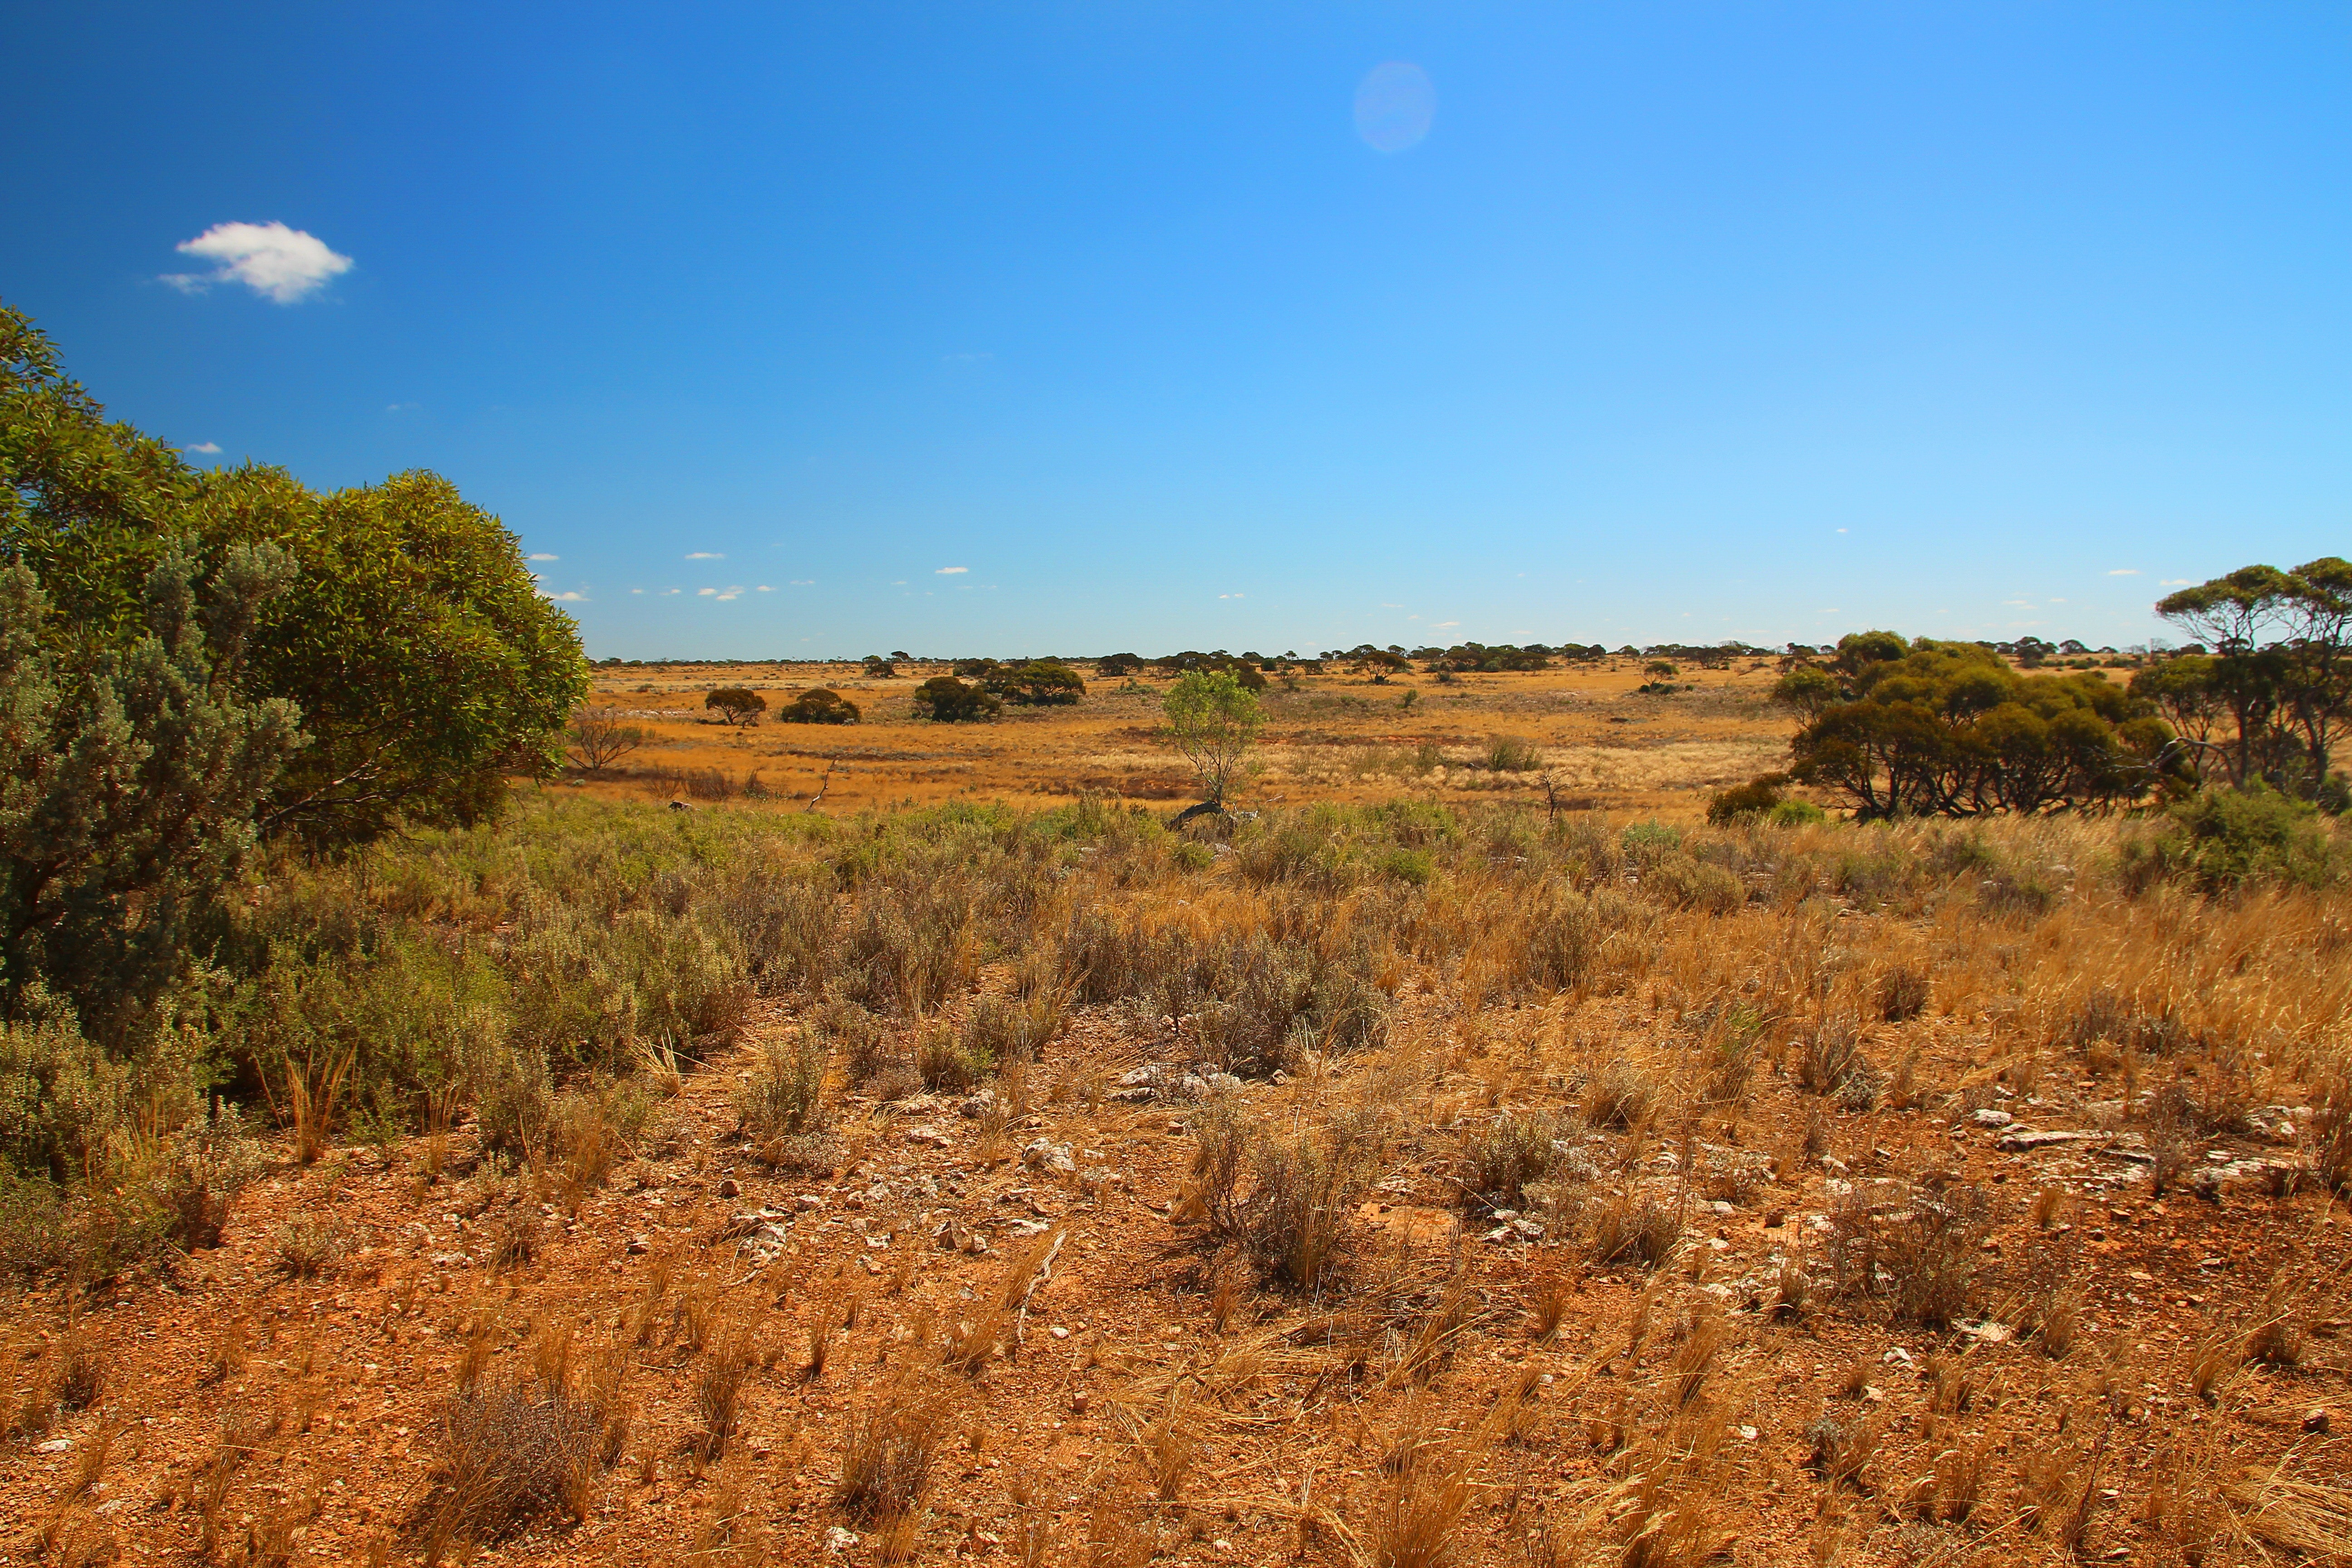 It's not worth wiping out a species for the Yeelirrie uranium mine